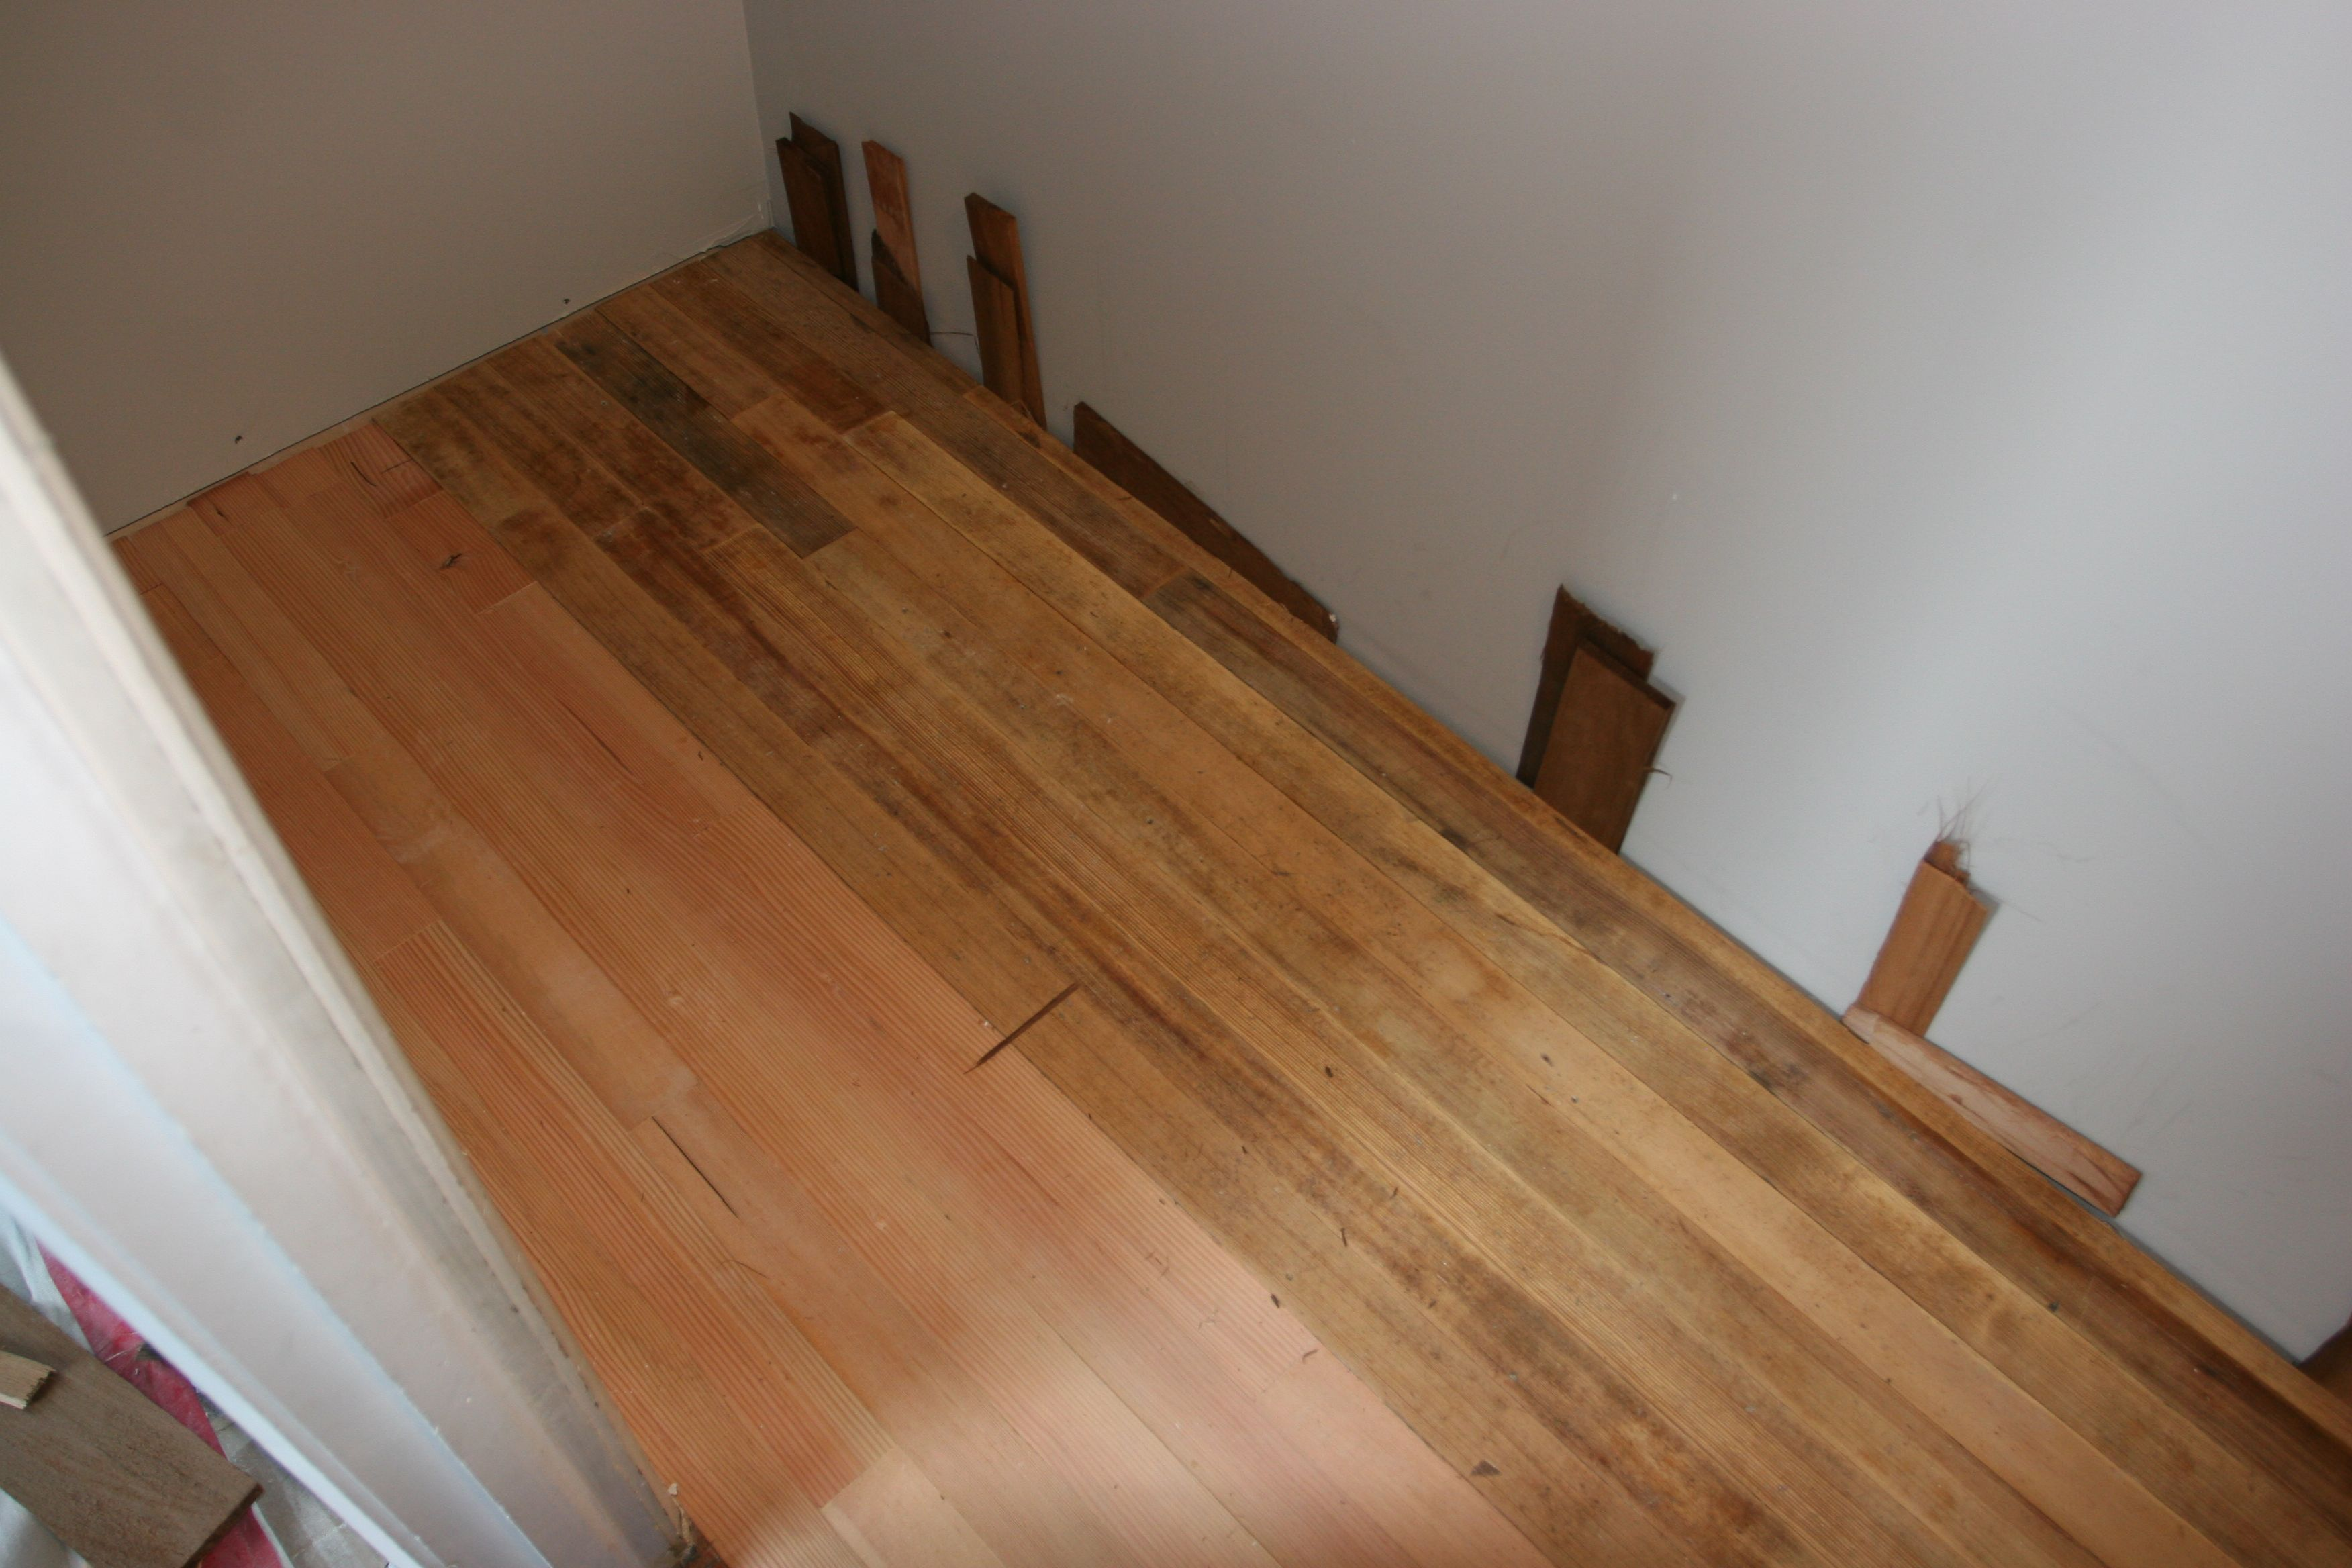 Closet floor - half old, half new. Will be interesting to see how it looks finished.